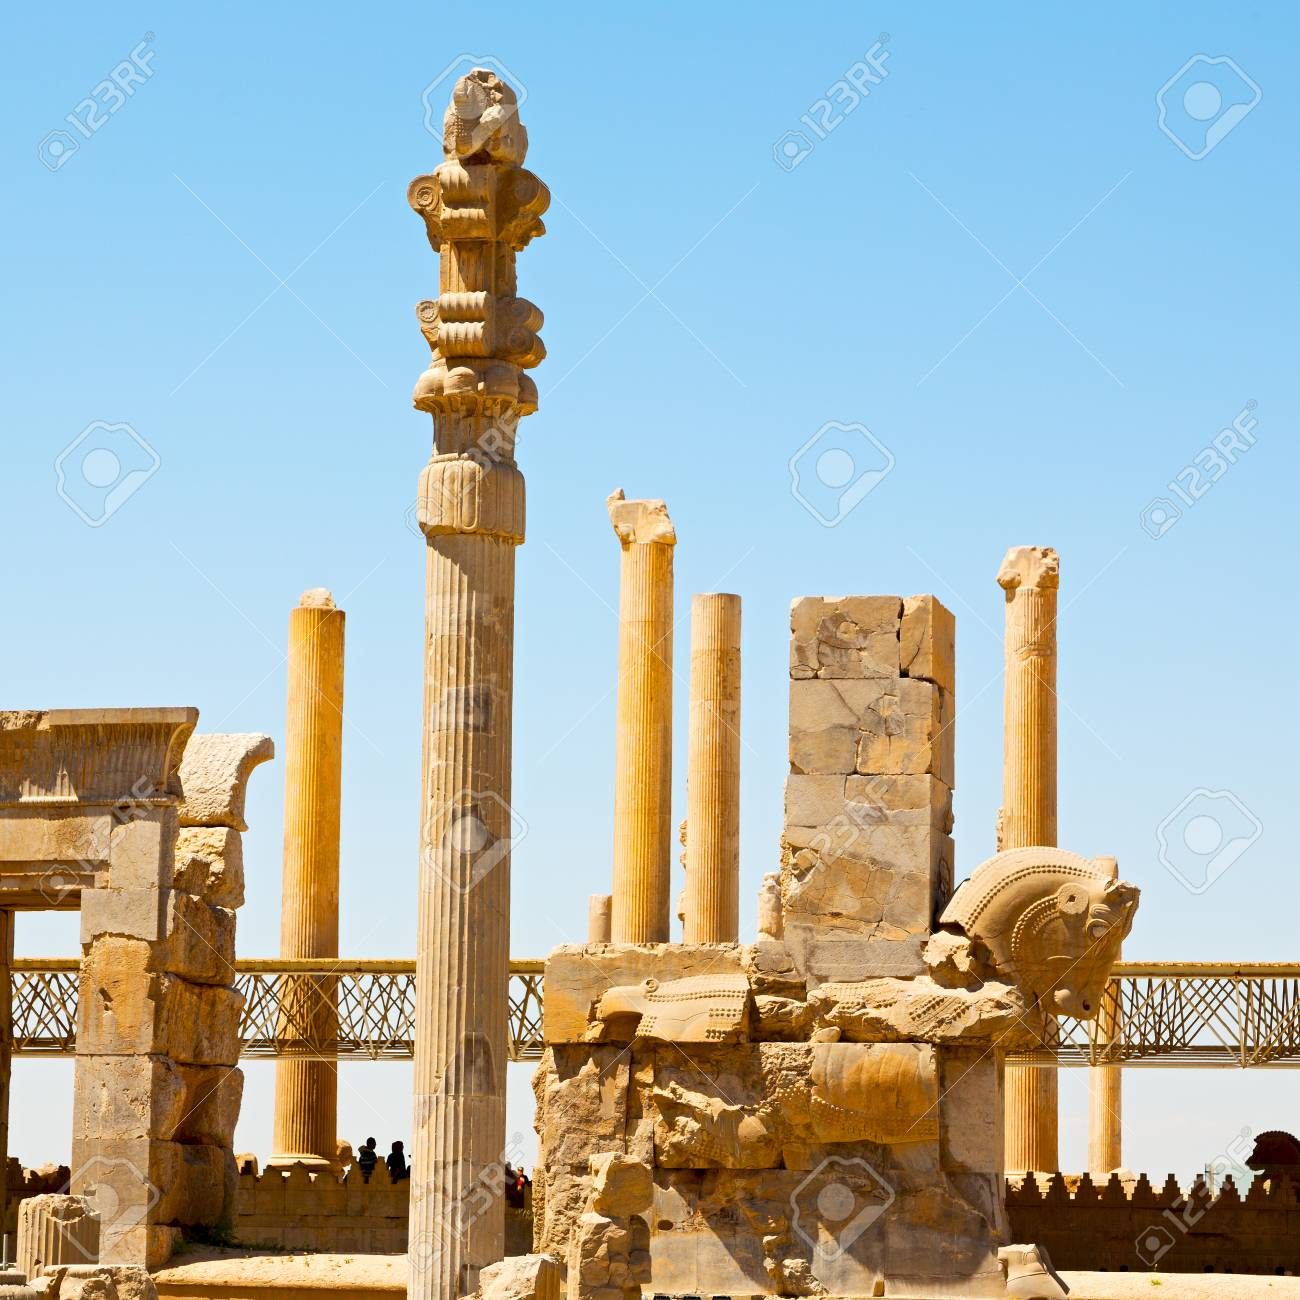 In Iran Persepolis The Old Ruins Historical Destination Monuments Stock Photo Picture And Royalty Free Image Image 74958581